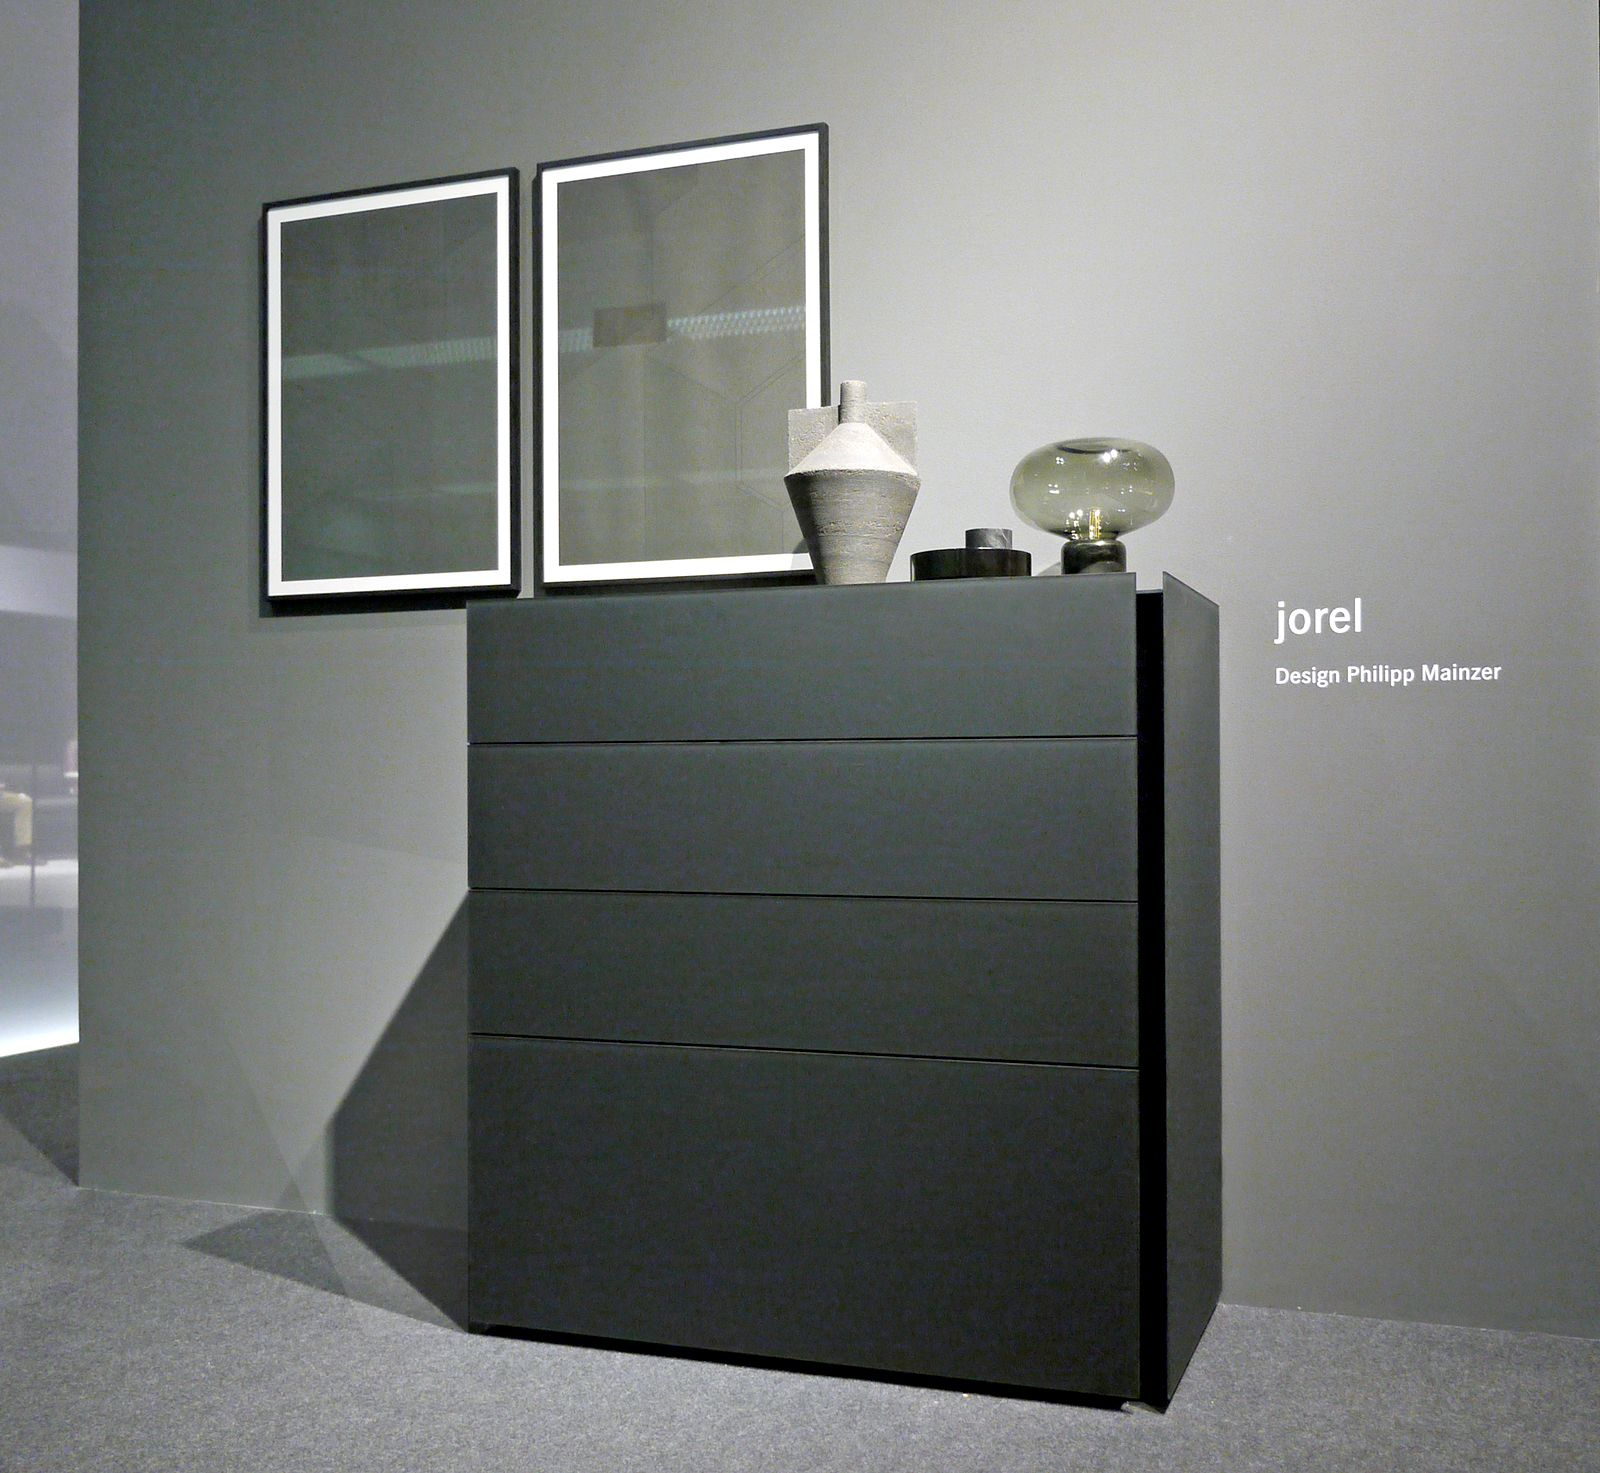 philipp mainzer for interl bke sideboard jorel clic. Black Bedroom Furniture Sets. Home Design Ideas